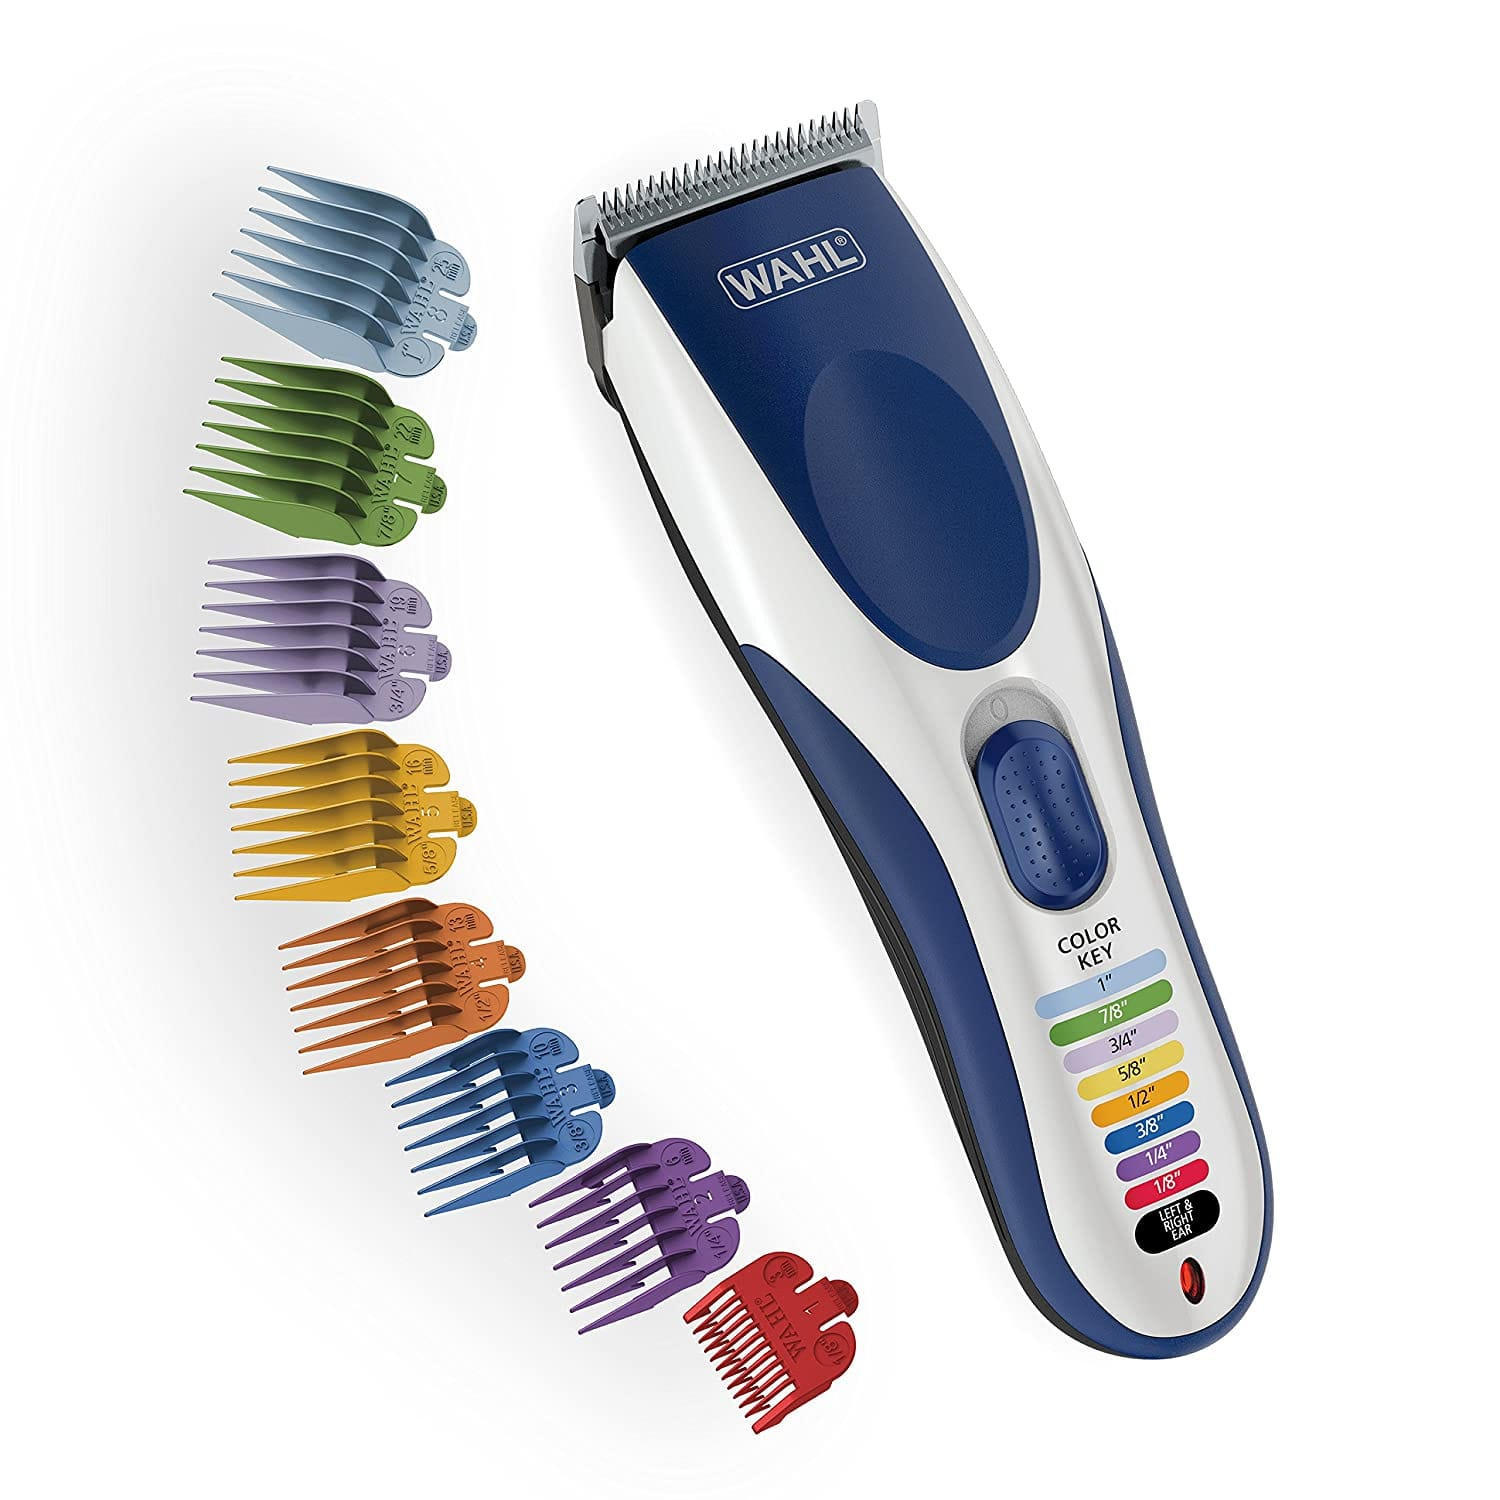 Wahl Color Pro Cordless Rechargeable Hair Clipper & Trimmer –  Model 9649 - $33.61